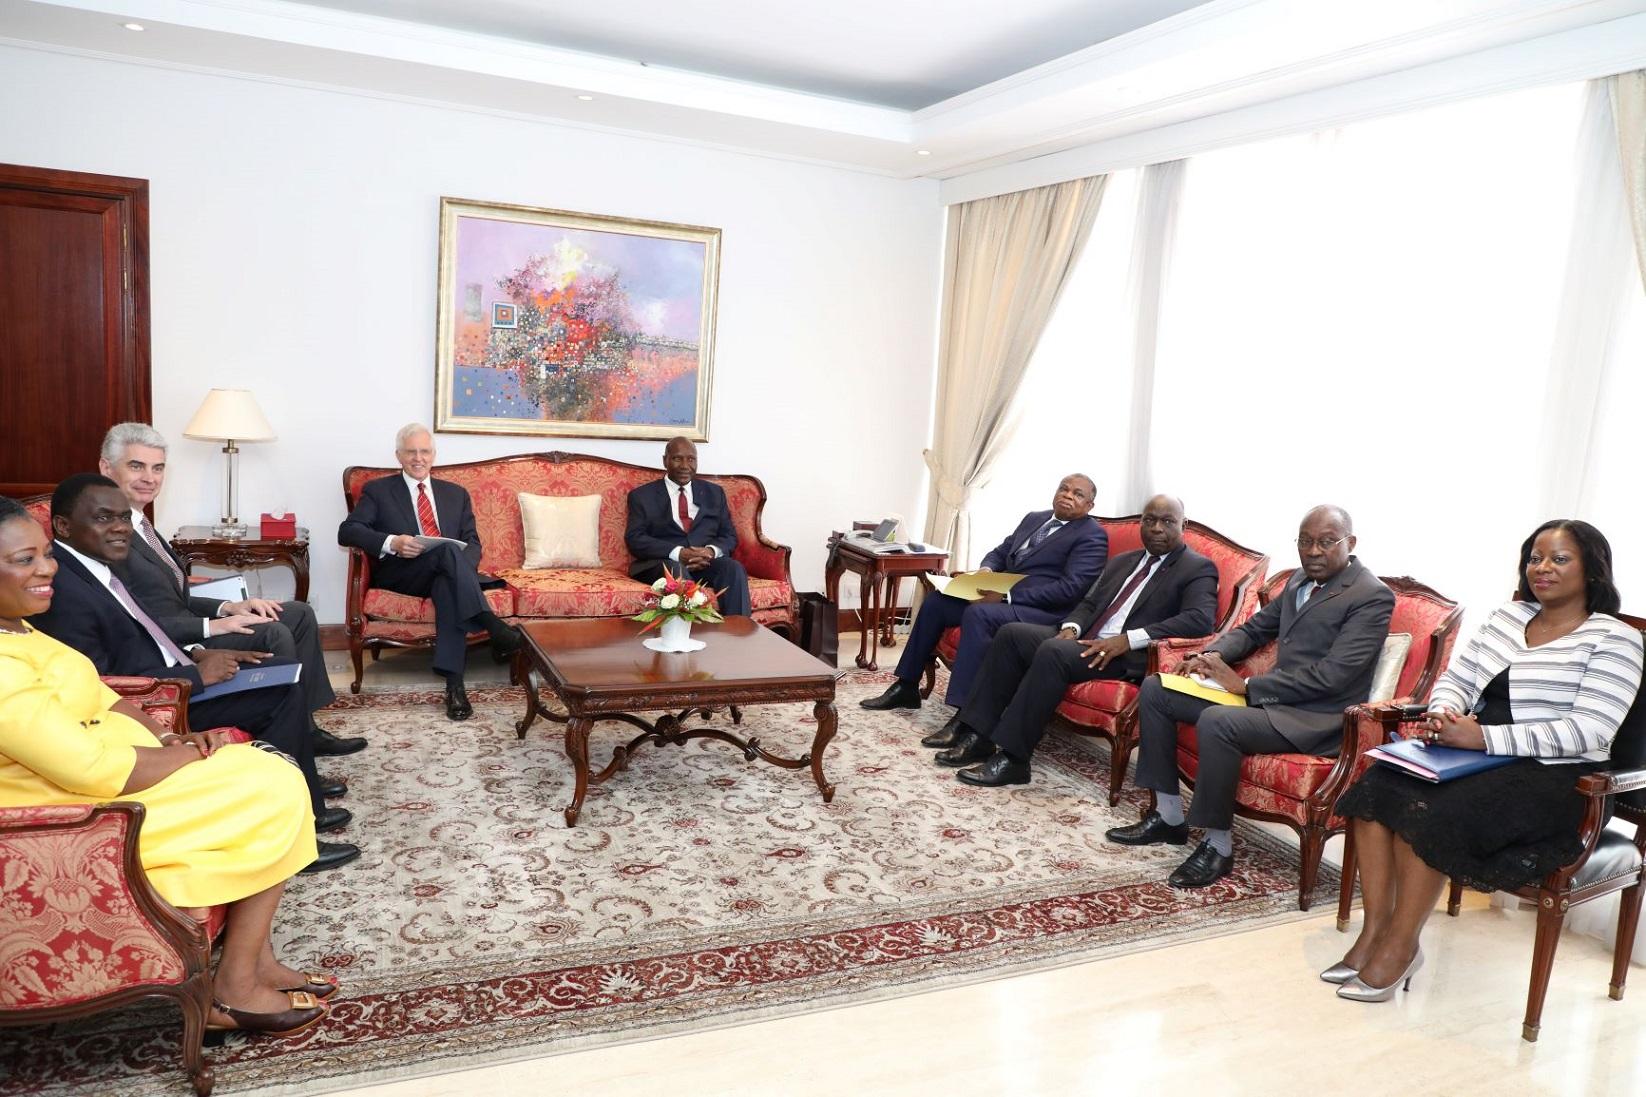 Elder D. Todd Christofferson and Bishop Gérald Caussé meet with Cote d'Ivoire Vice President Daniel K. Duncan and other government officials in Abidjan on May 31, 2019.